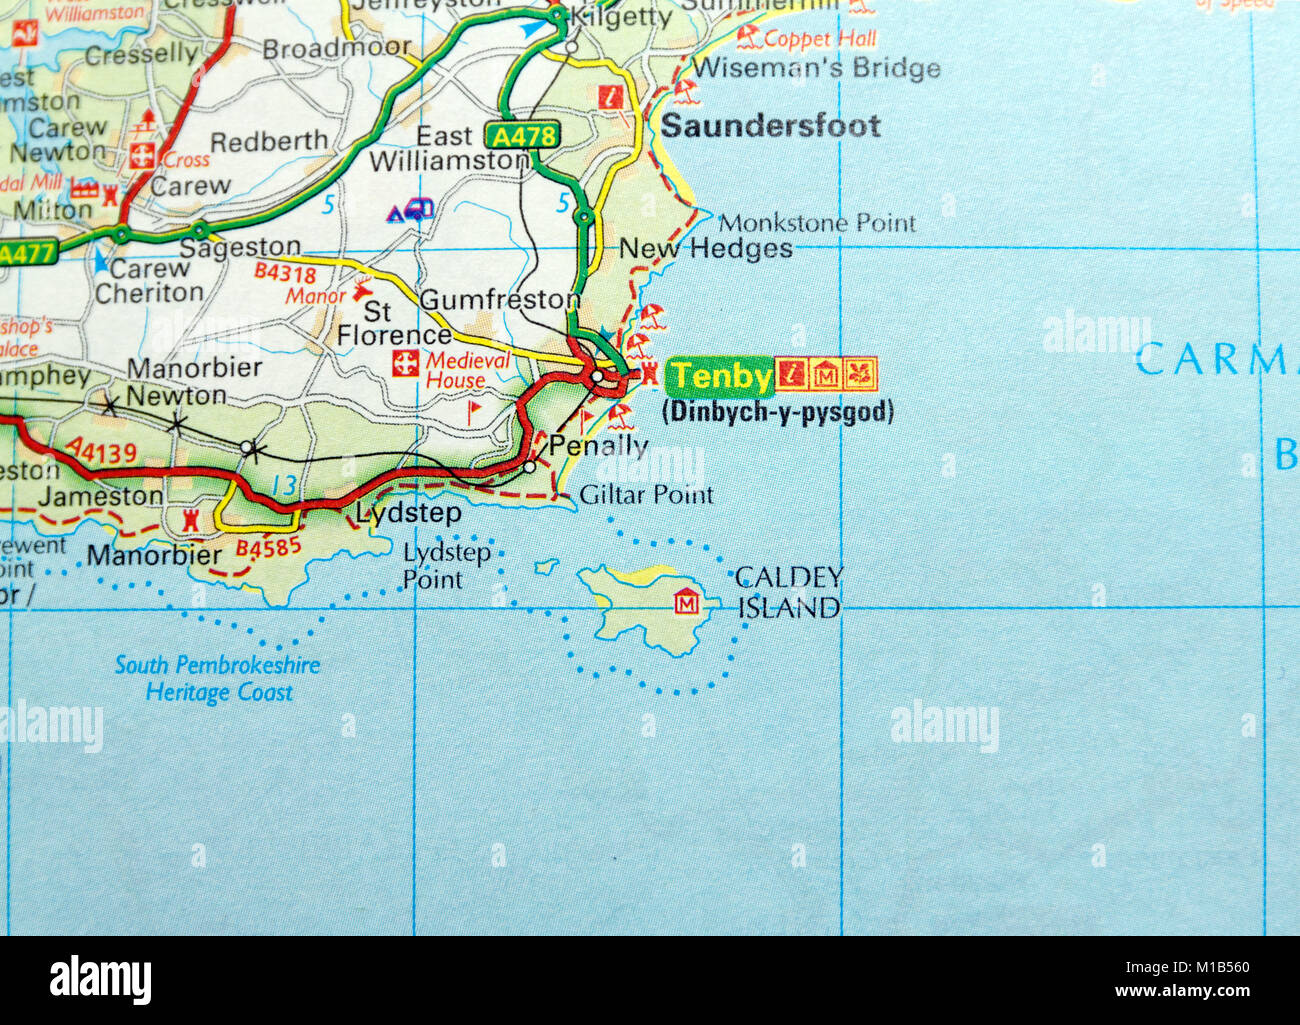 Y Map Stock Photos & Y Map Stock Images - Alamy Giltar Map Spain on portugal map, europe map, canary islands map, austria map, mexico map, florida map, britain map, france map, mediterranean map, caribbean map, germany map, england map, poland map, italy map, sweden map, dominican republic map, catalonia map, greece map, china map, japan map,